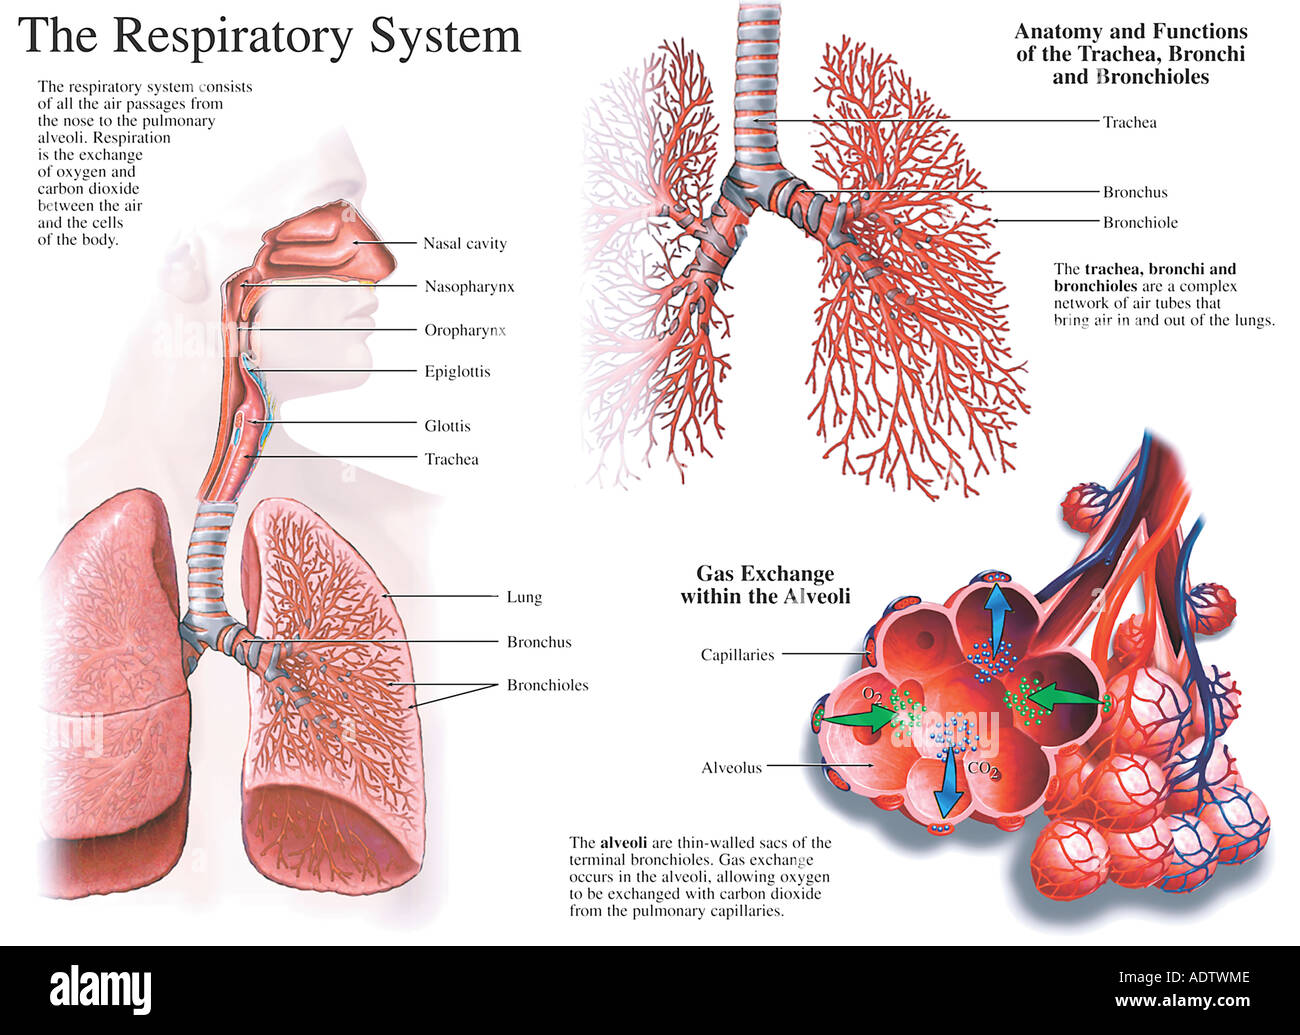 Anatomy and Functions of the Respiratory System Stock Photo: 7710477 ...